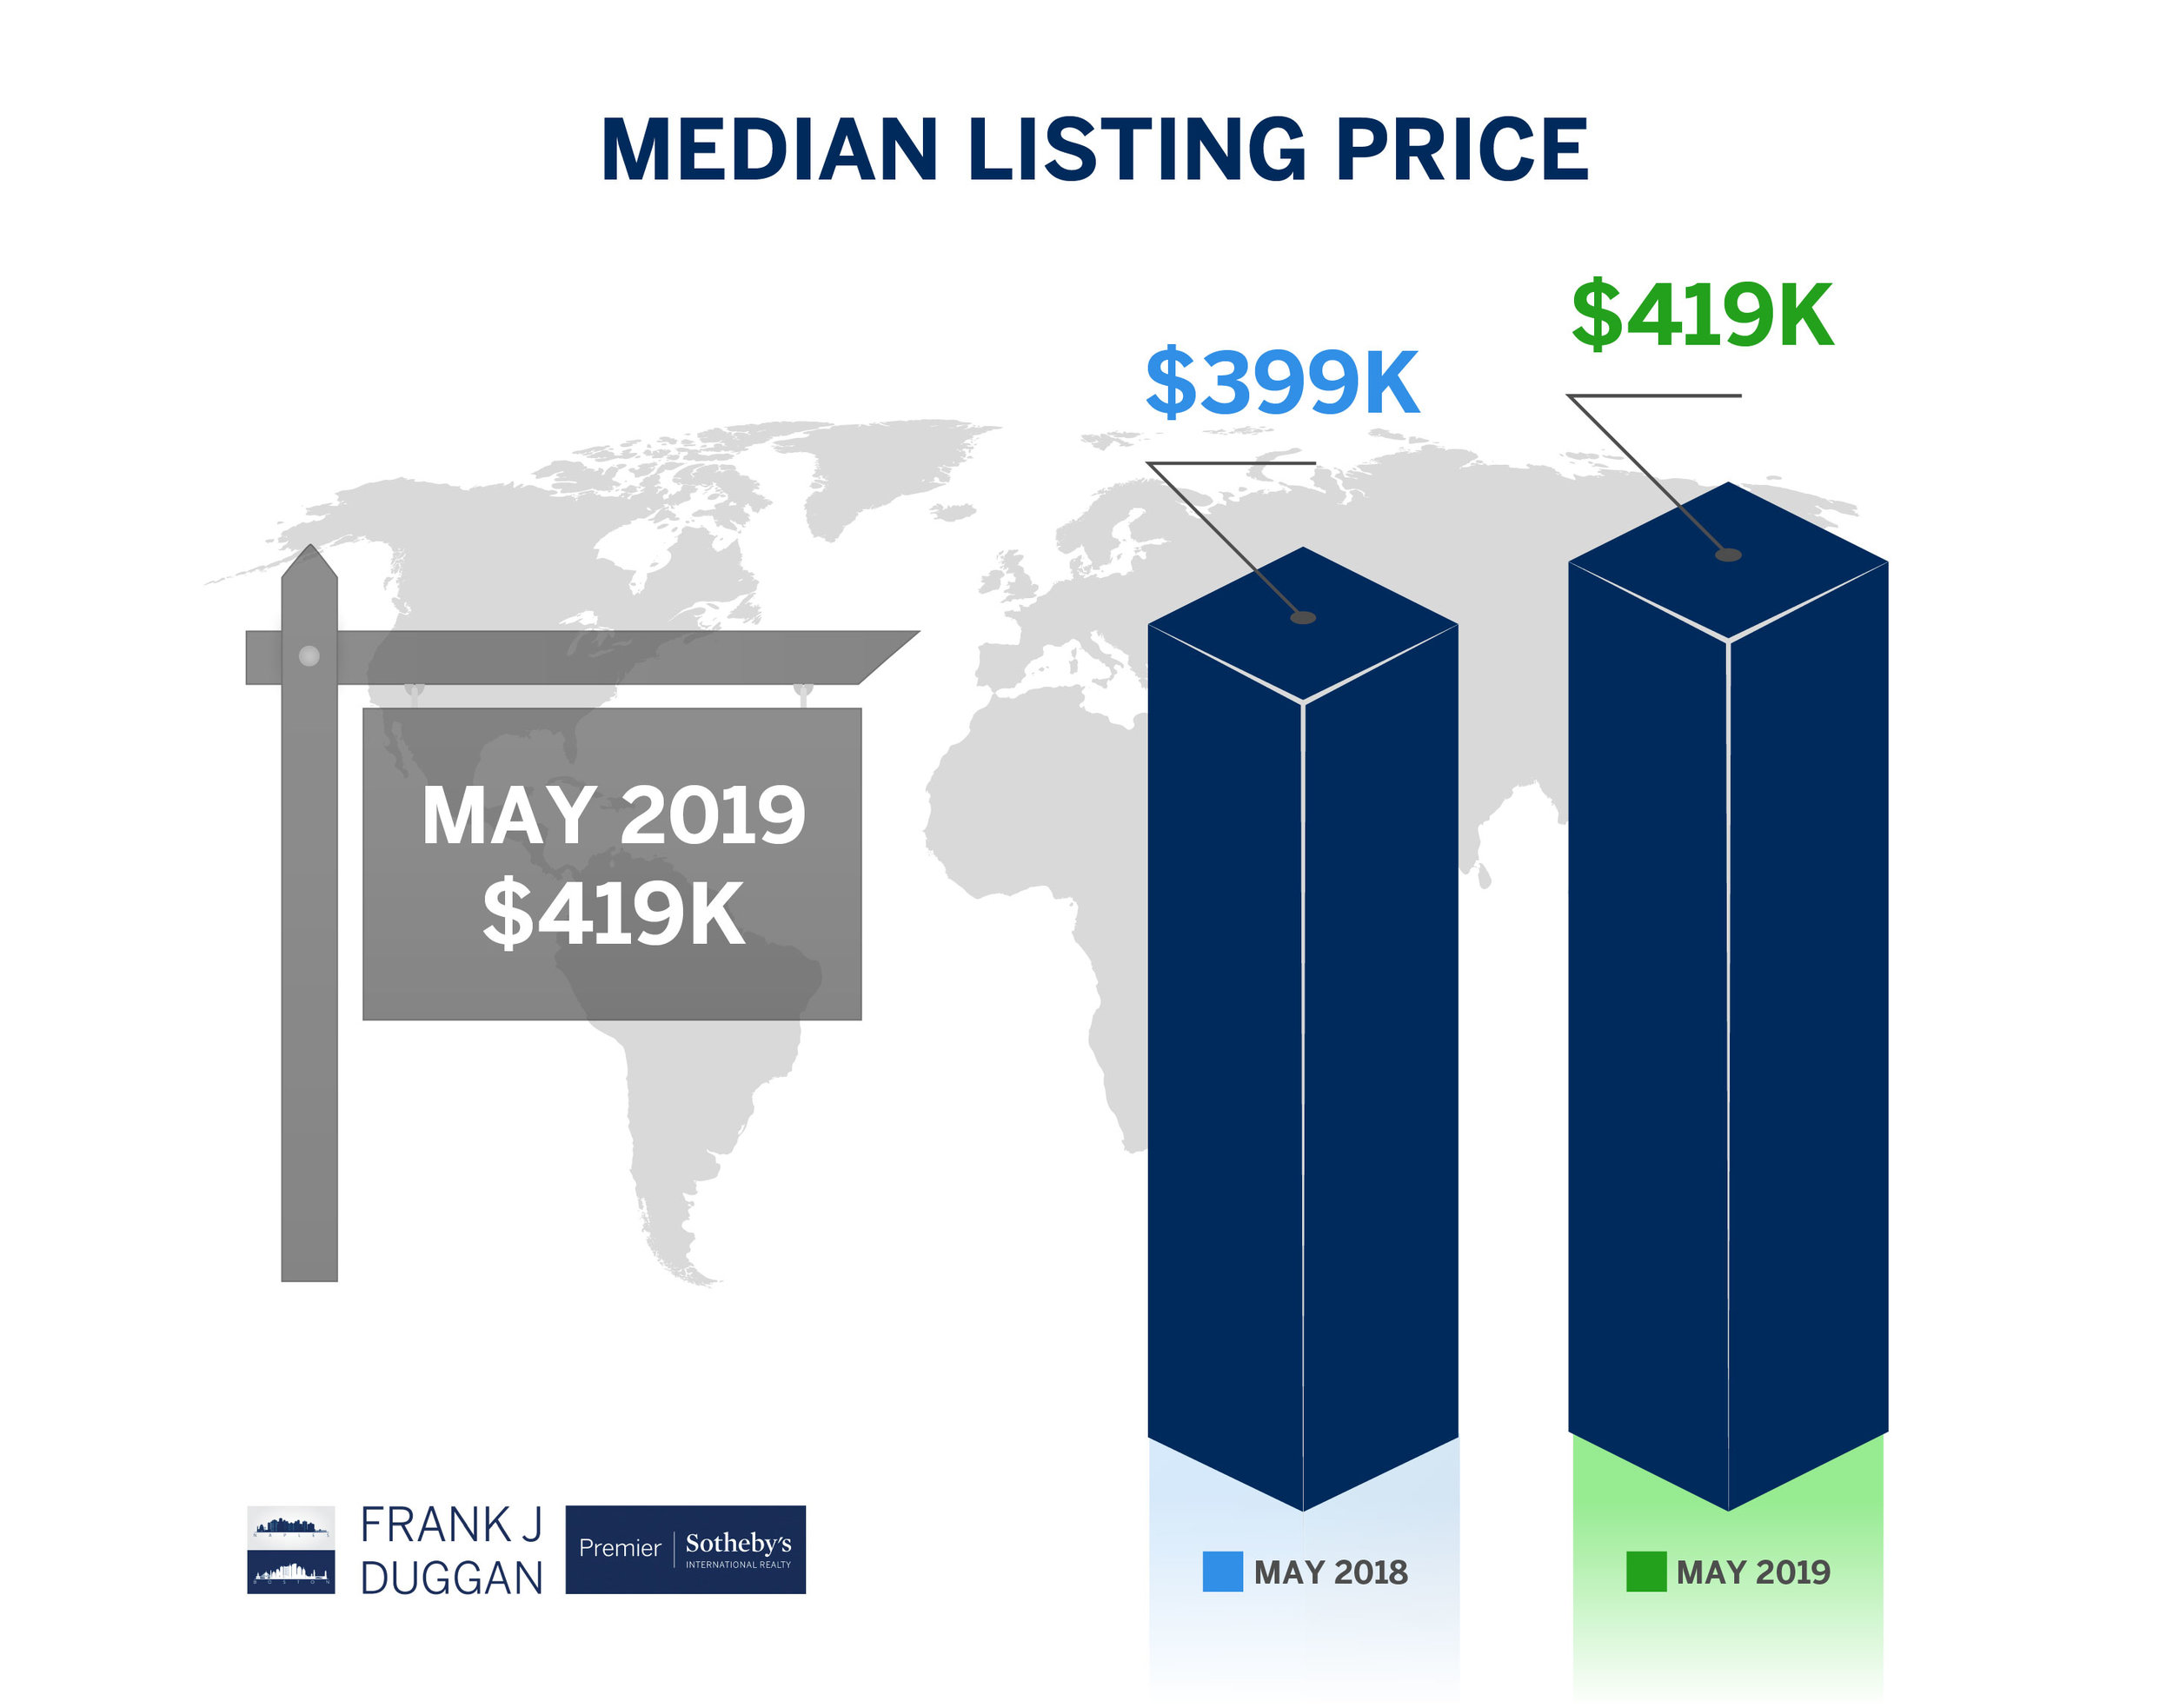 median listing price may 2019 naples-01.jpg